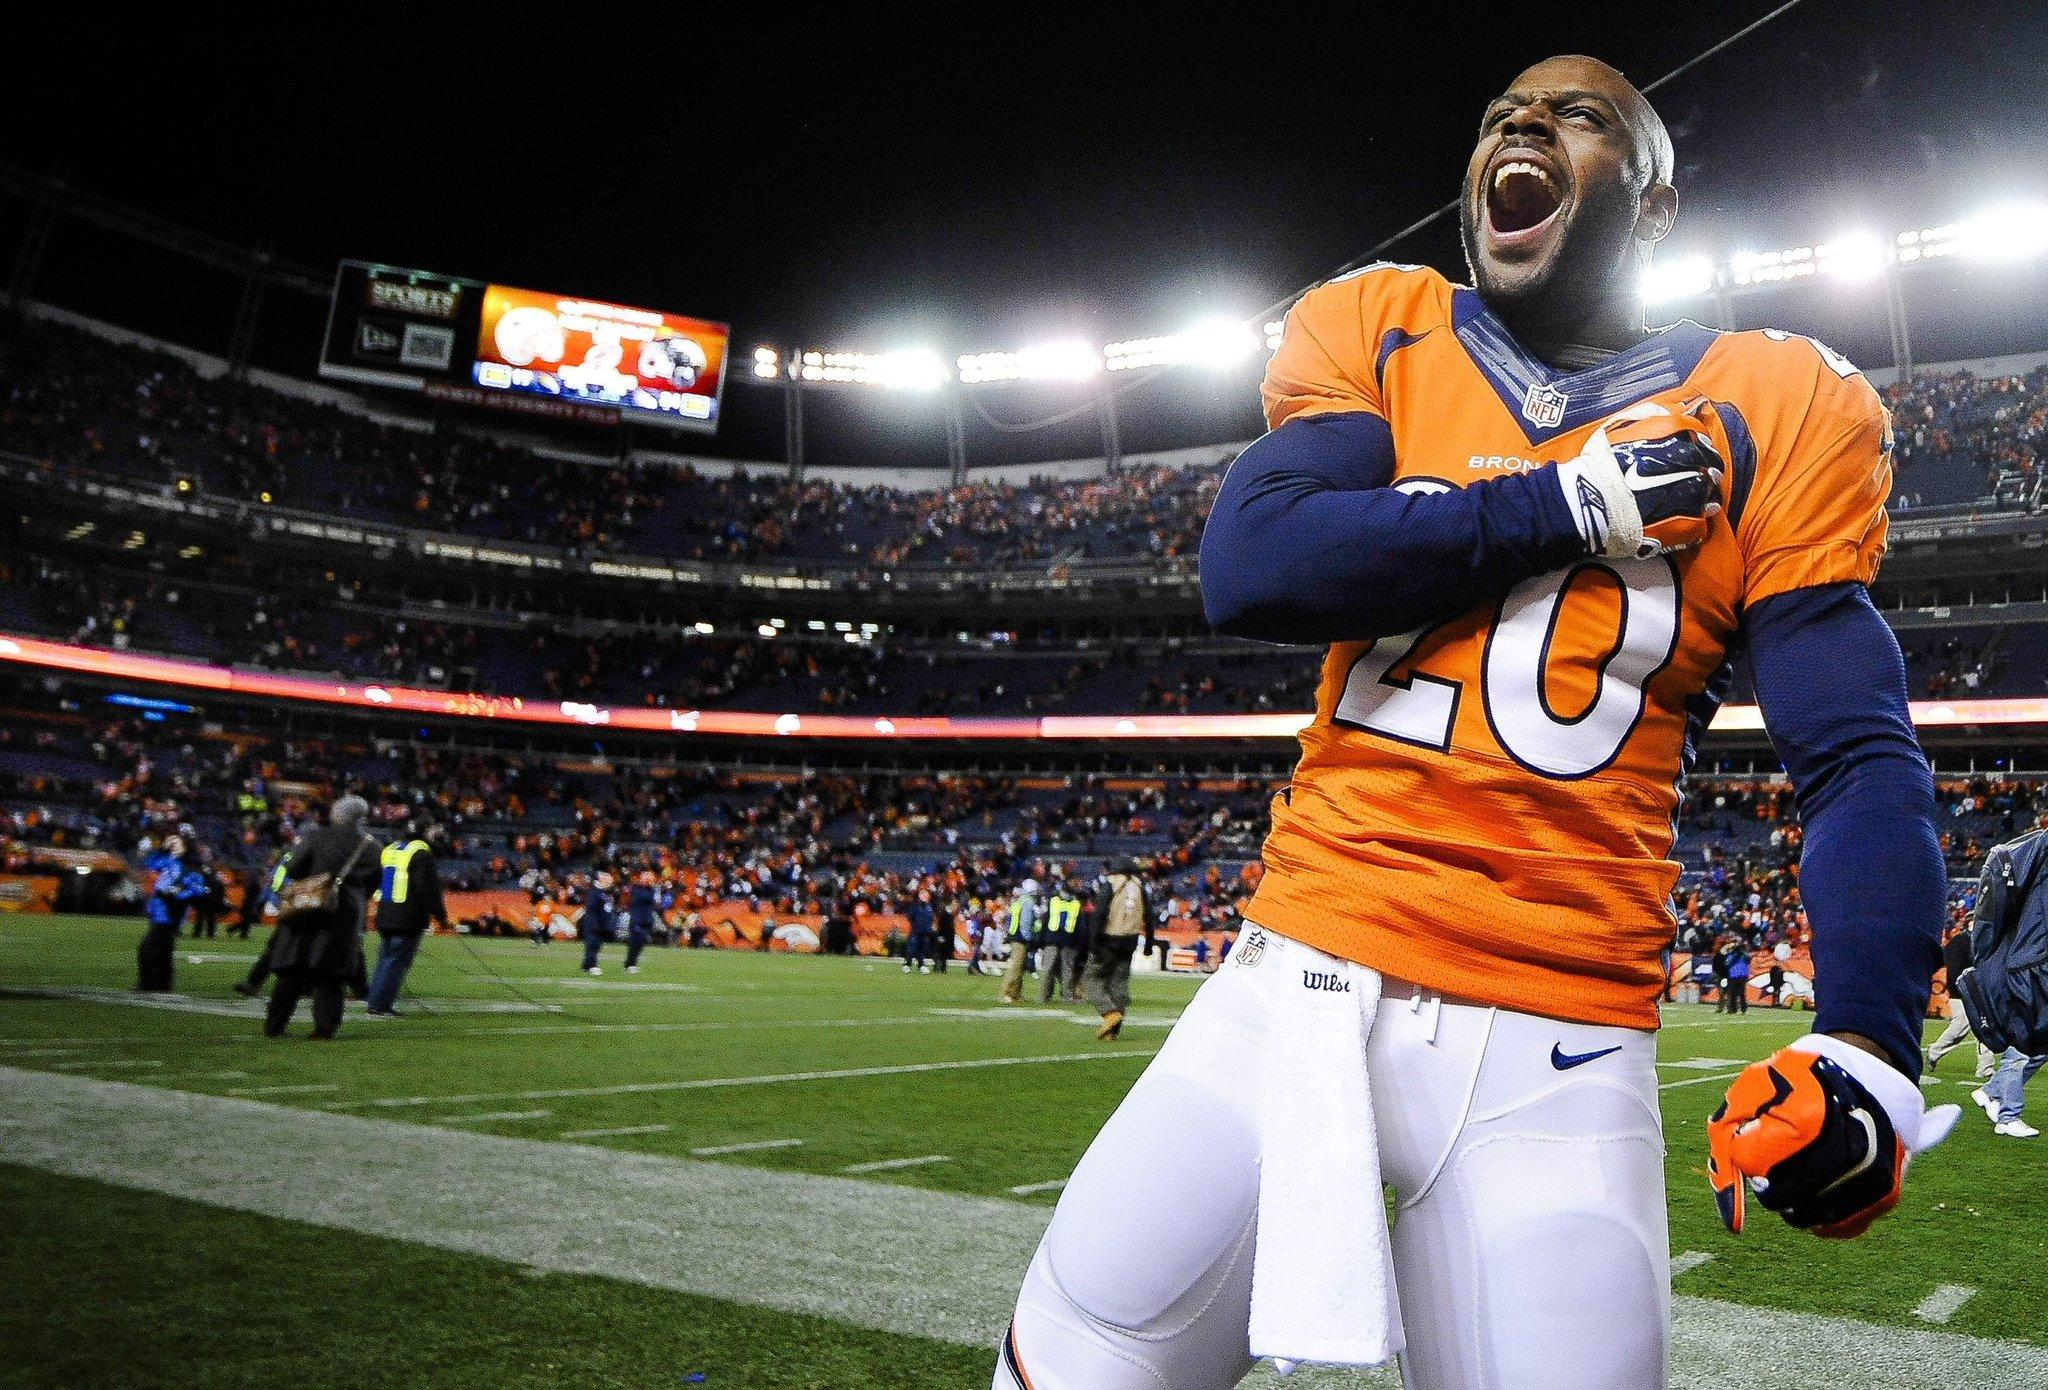 Denver Broncos safety Mike Adams celebrates after beating the San Diego Chargers 24-17 in the AFC divisional playoffs.